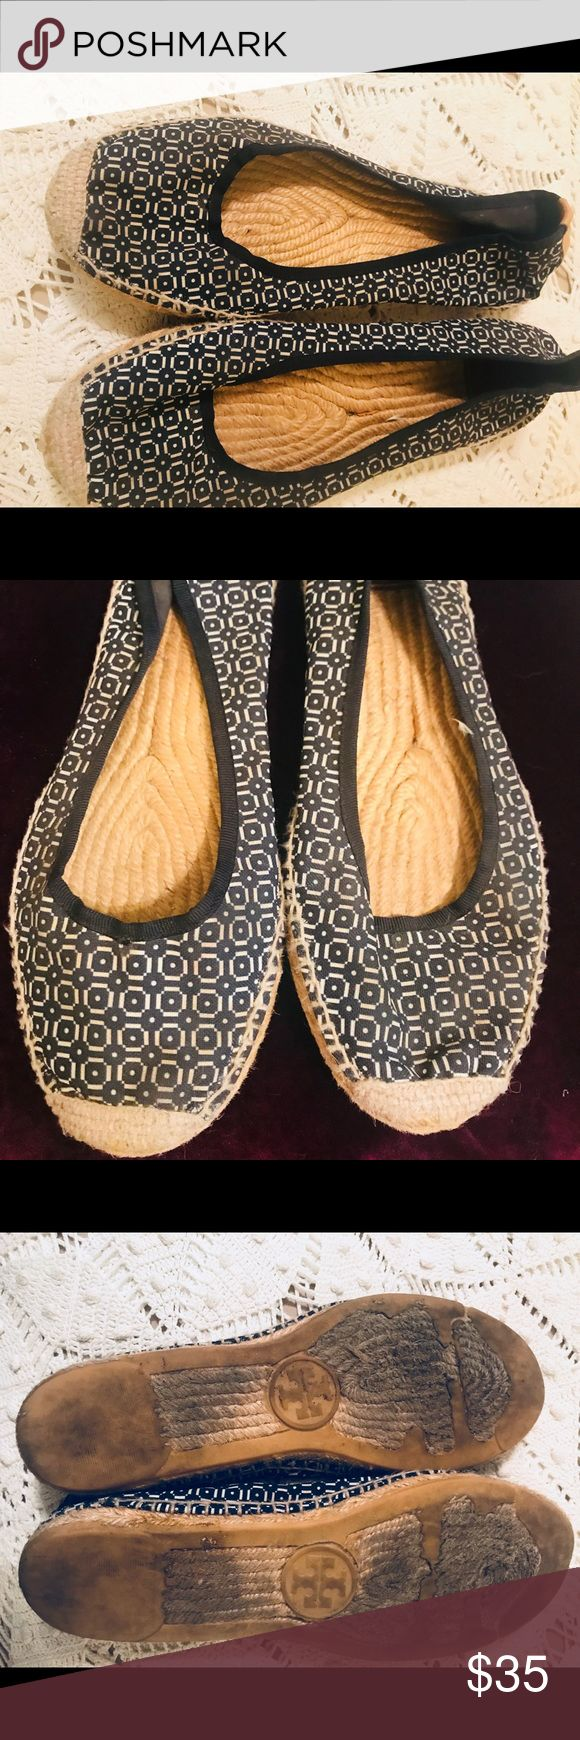 TORY BURCH Blue and White Ballet Espadrilles These shoes have been worn a lot. They are super comfy blue and white ballet style espadrilles from Tory Burch. Tory Burch Shoes Espadrilles